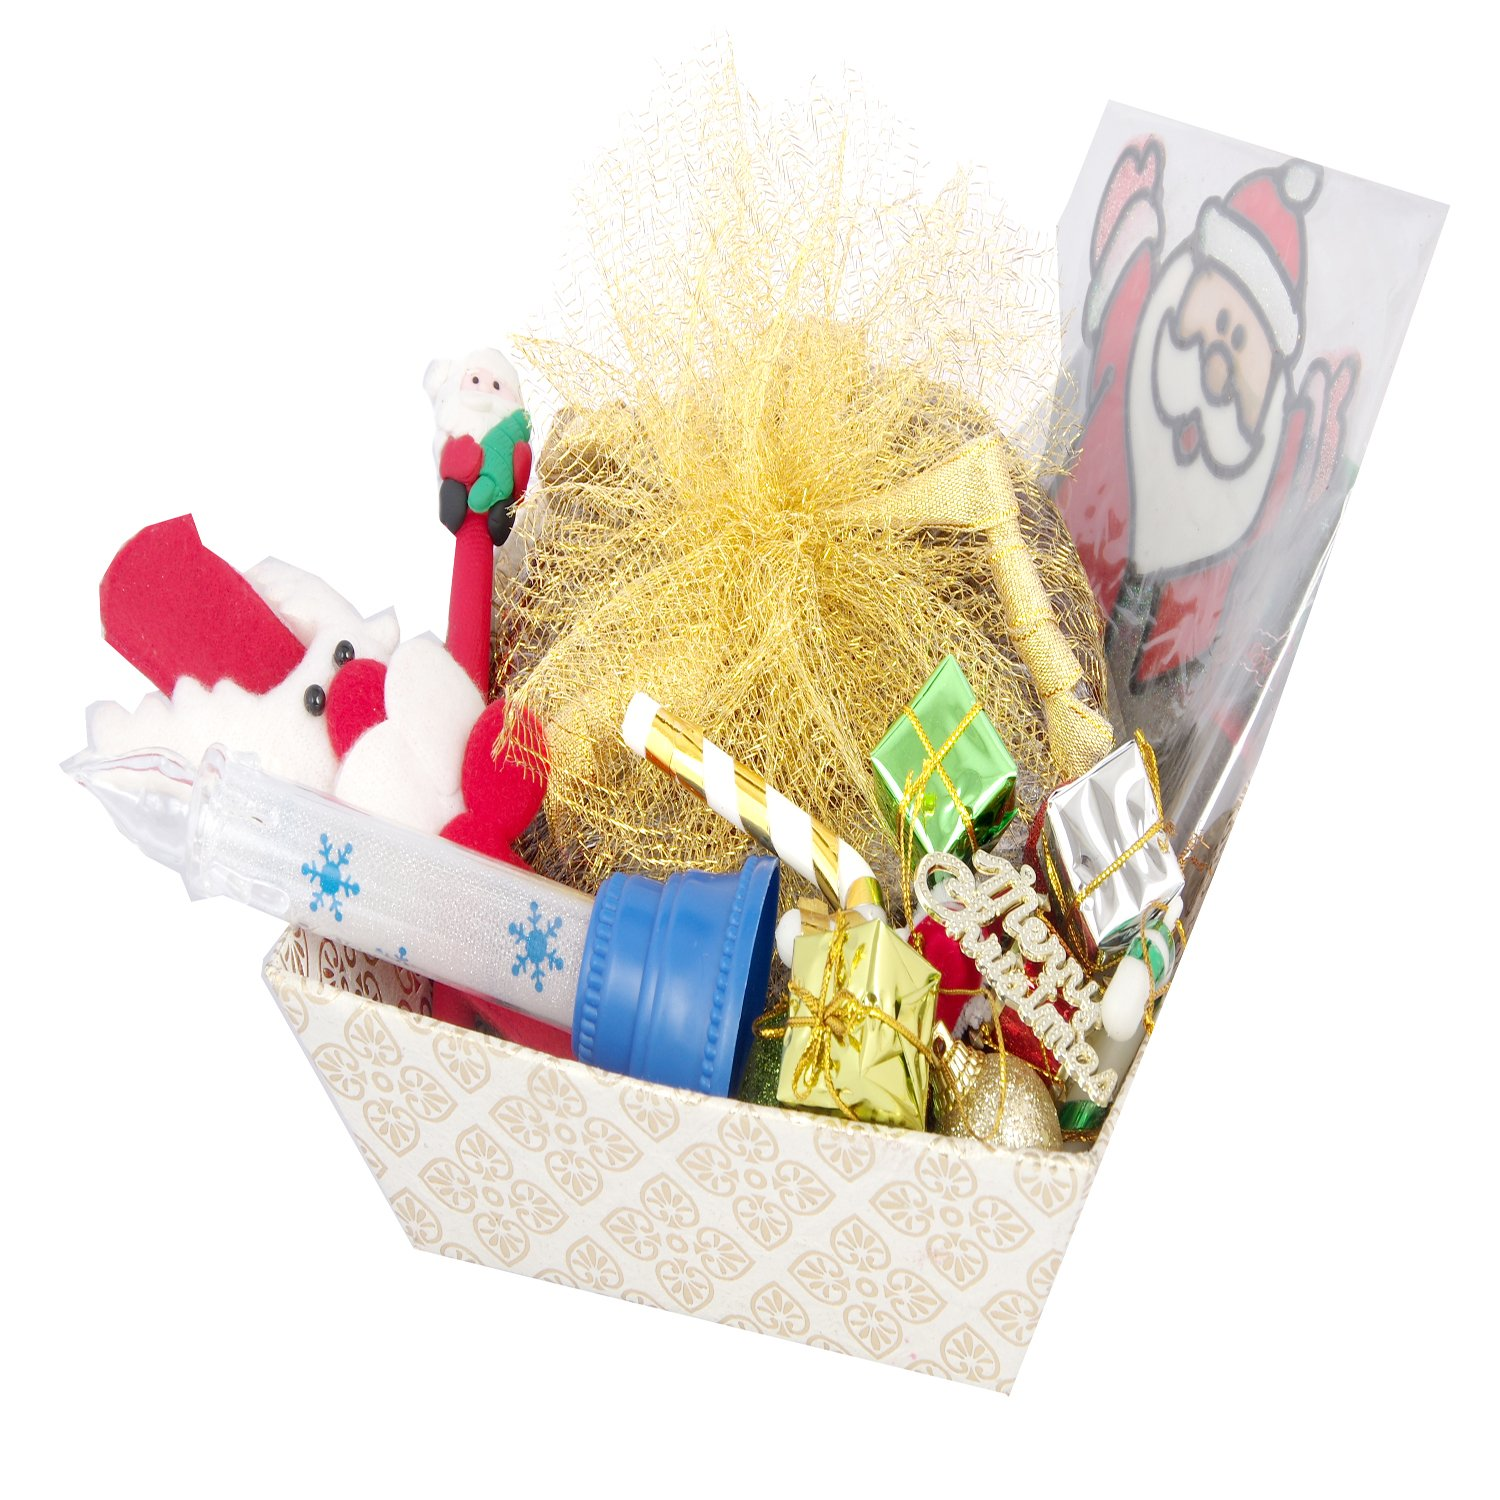 Christmas White Basket Plum Cake Hamper